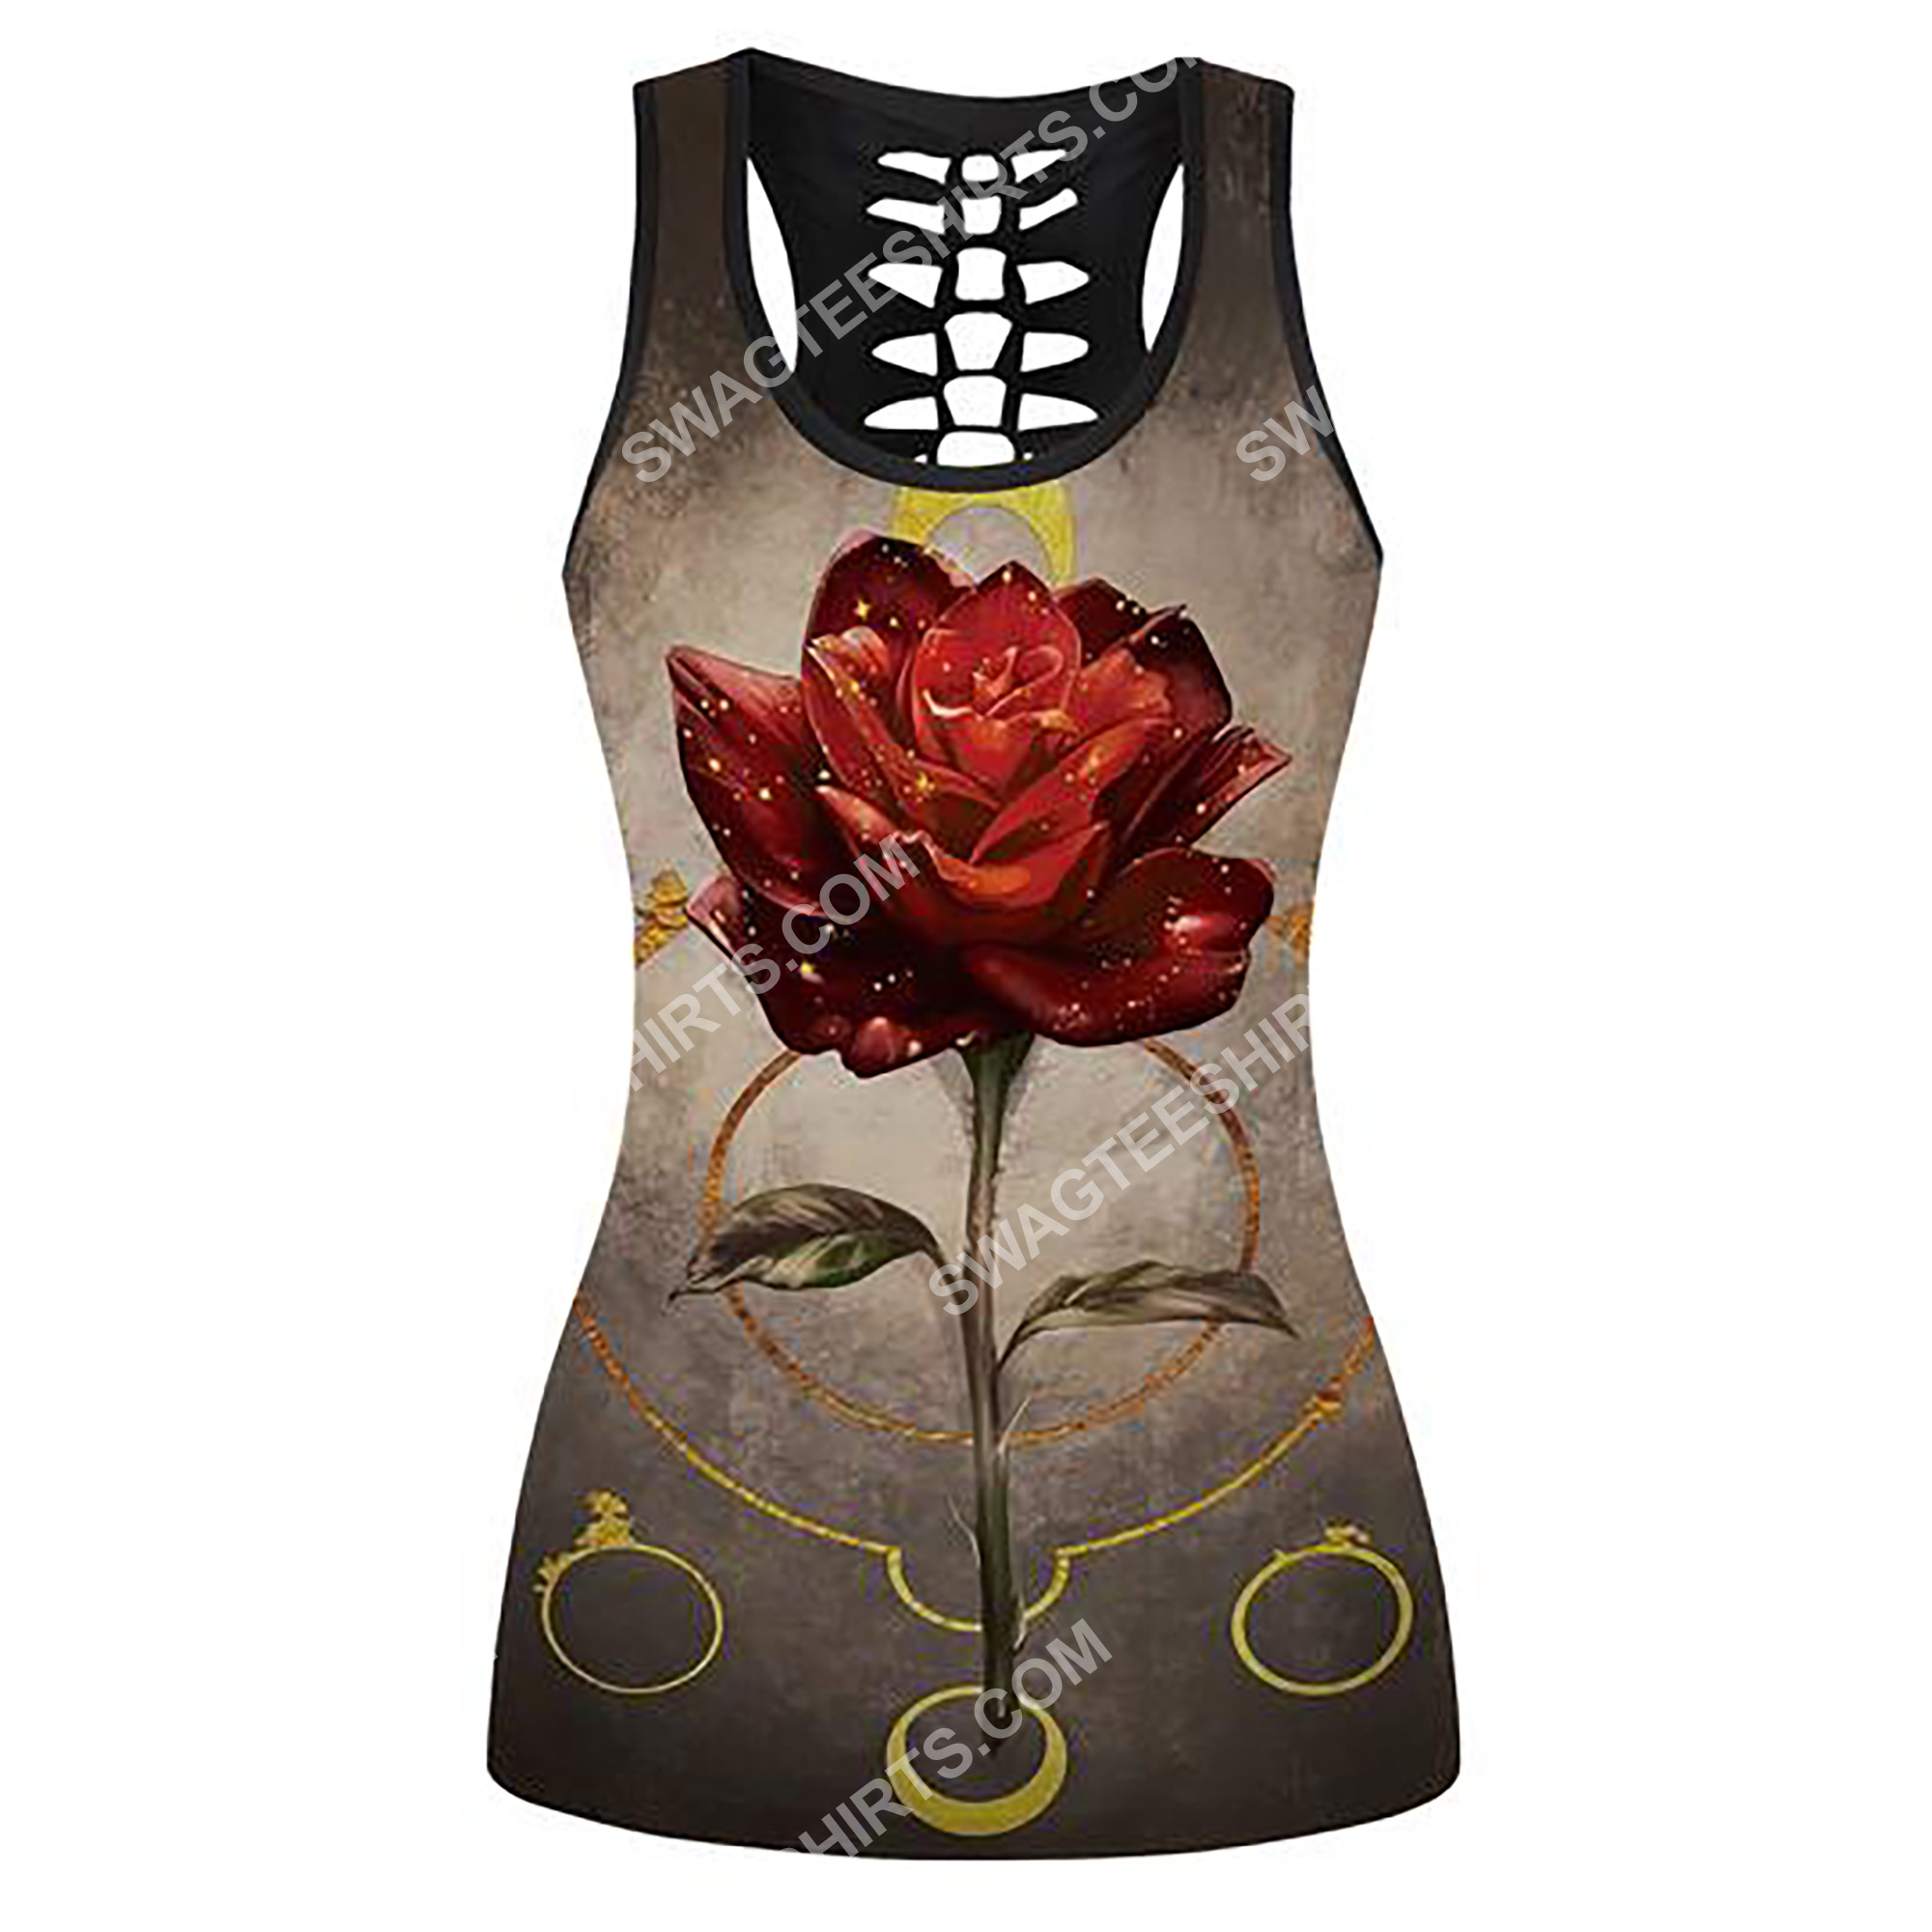 rose and moon full printing hollow tank top 2(1) - Copy